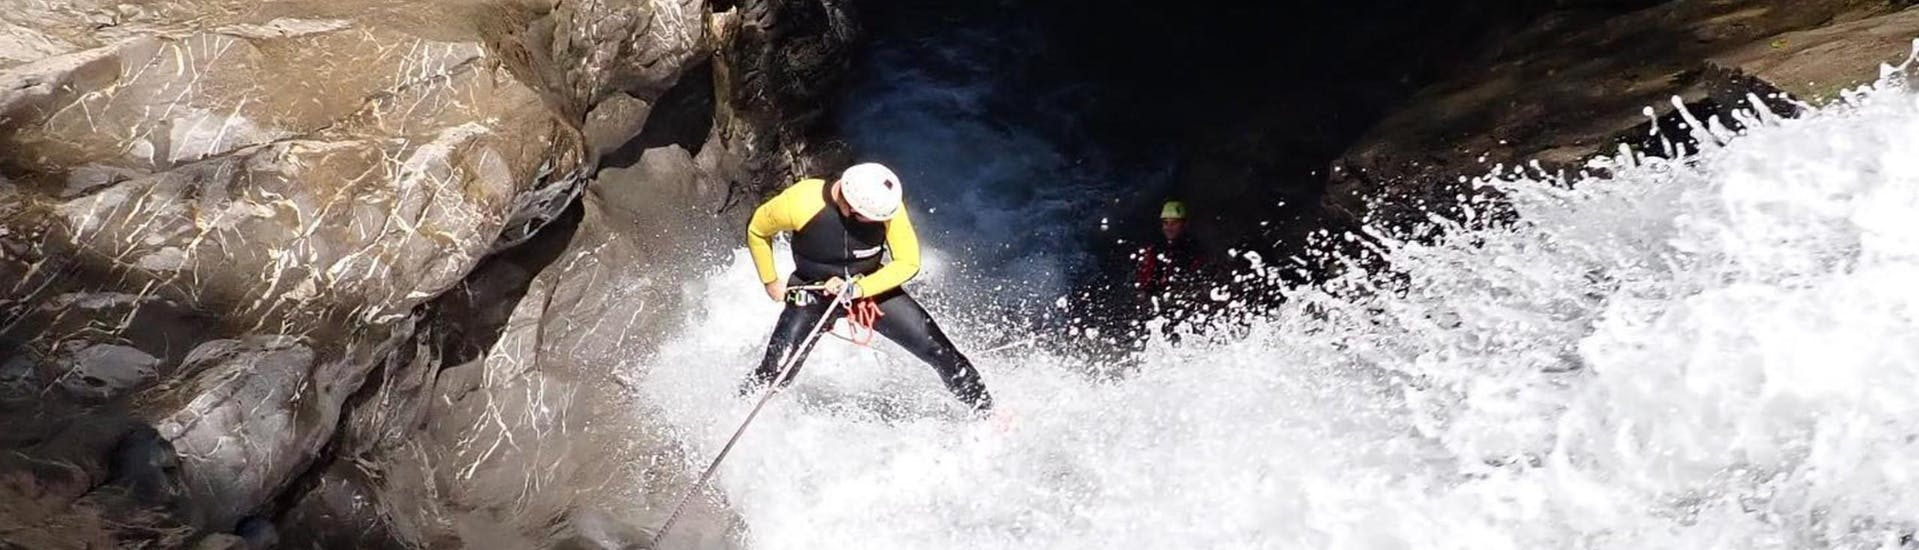 A man is abseiling down a roaring waterfall as he makes his way through the ravine on the tour Canyoning in Schwarzwasserbach for Experienced Canyoneers with canyoning erleben.